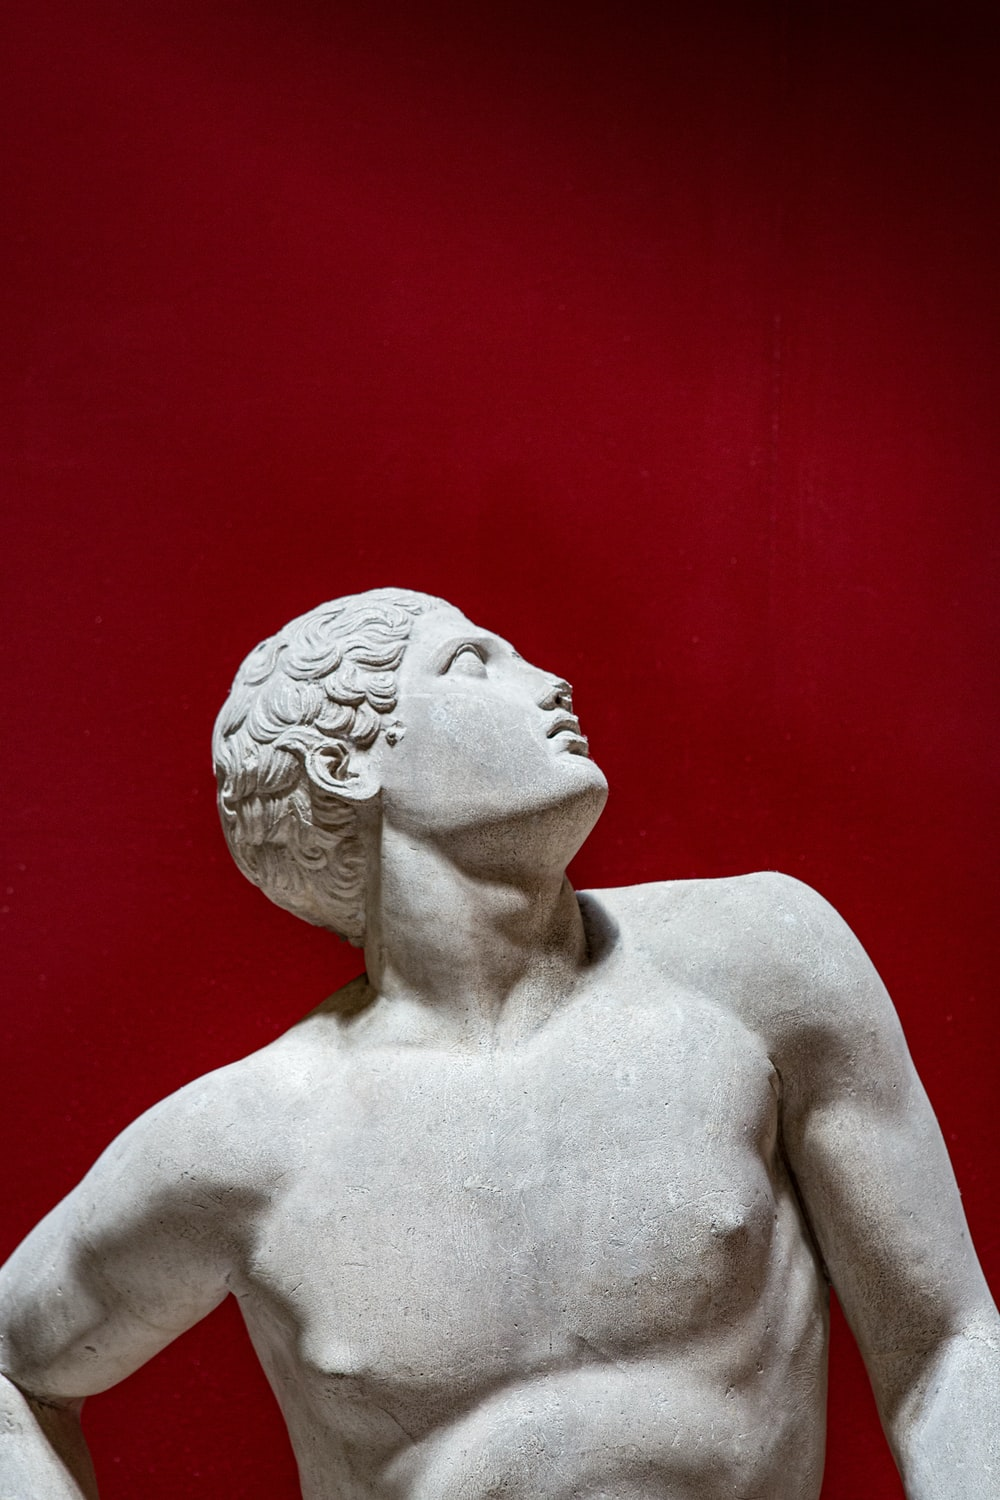 Grecian male statue looks up on red background